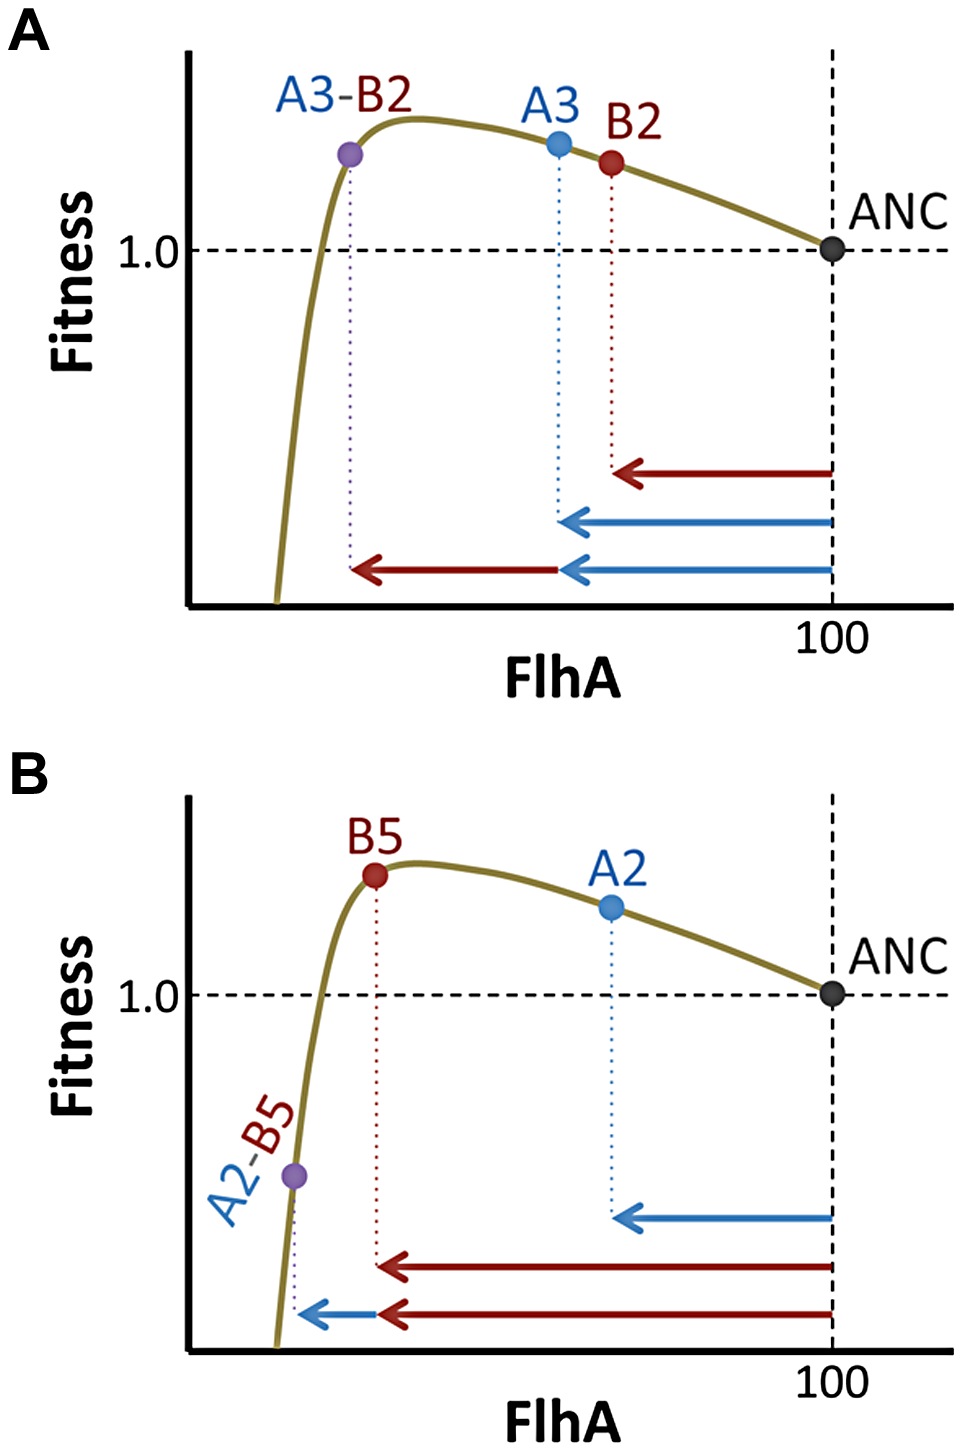 Phenotype and not just fitness value determines epistatic interactions.